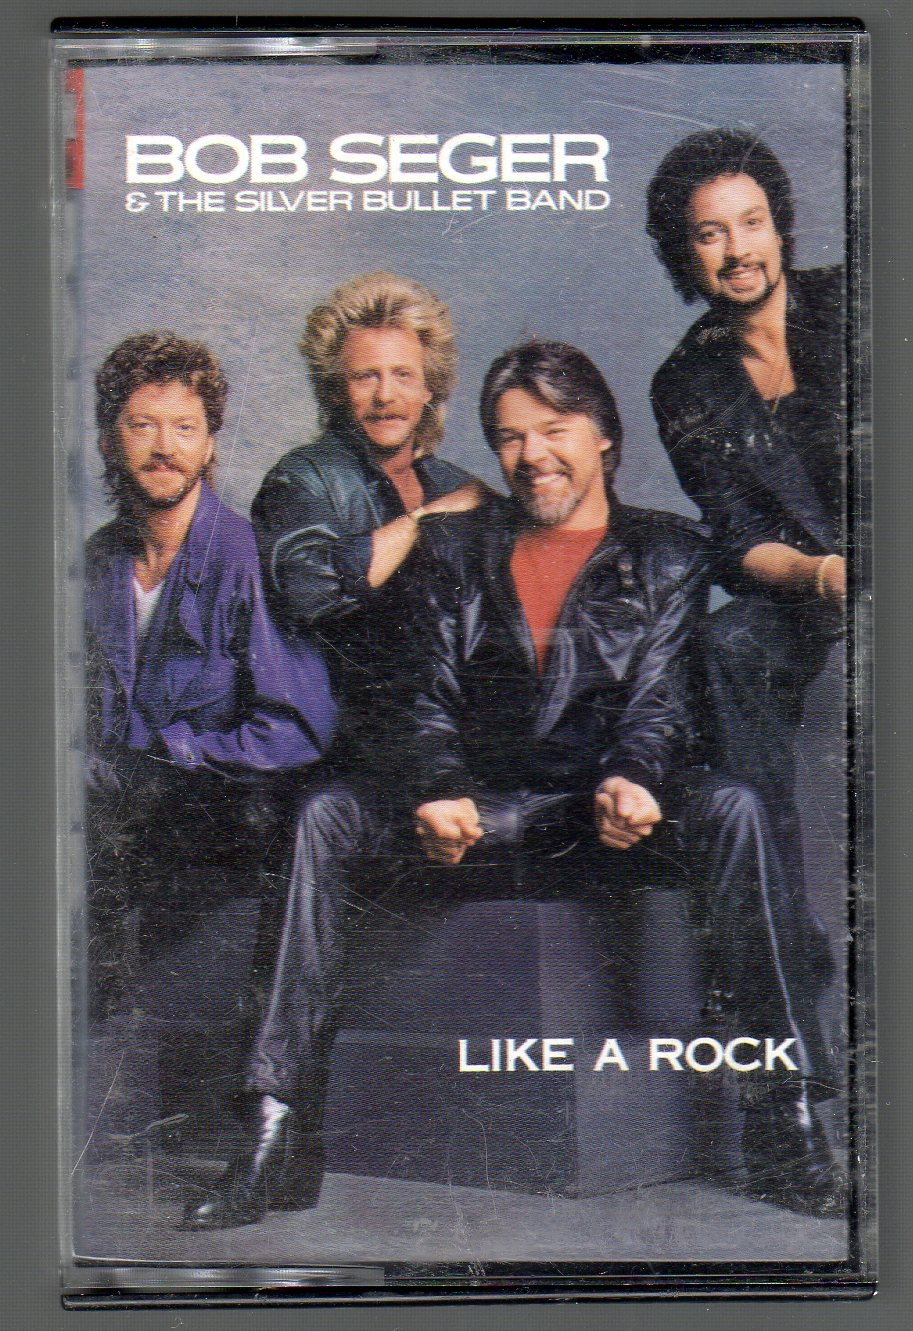 Bob Seger And The Silver Bullet Band - Like A Rock Cassette Tape